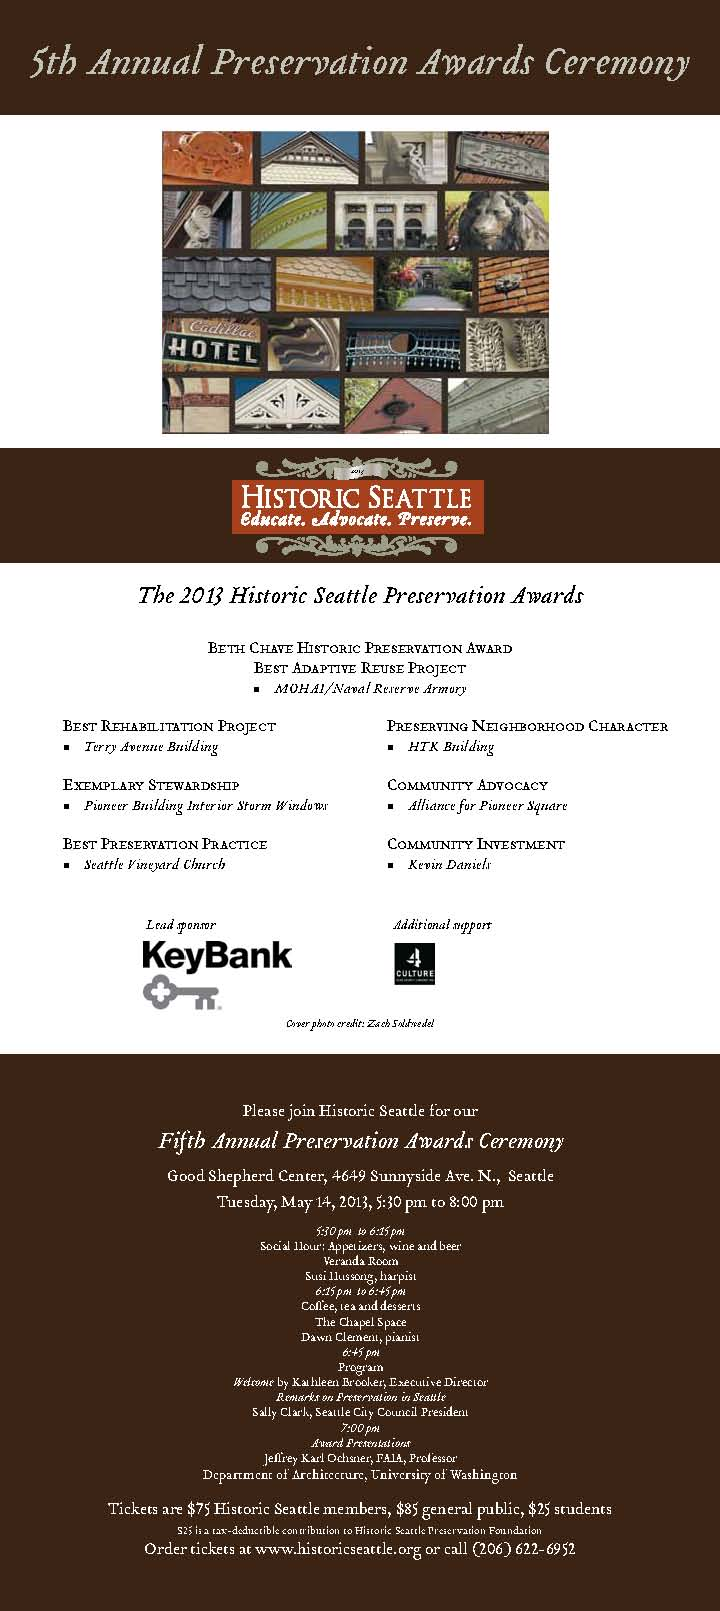 Historic Seattle 5th Annual Preservation Awards Ceremony